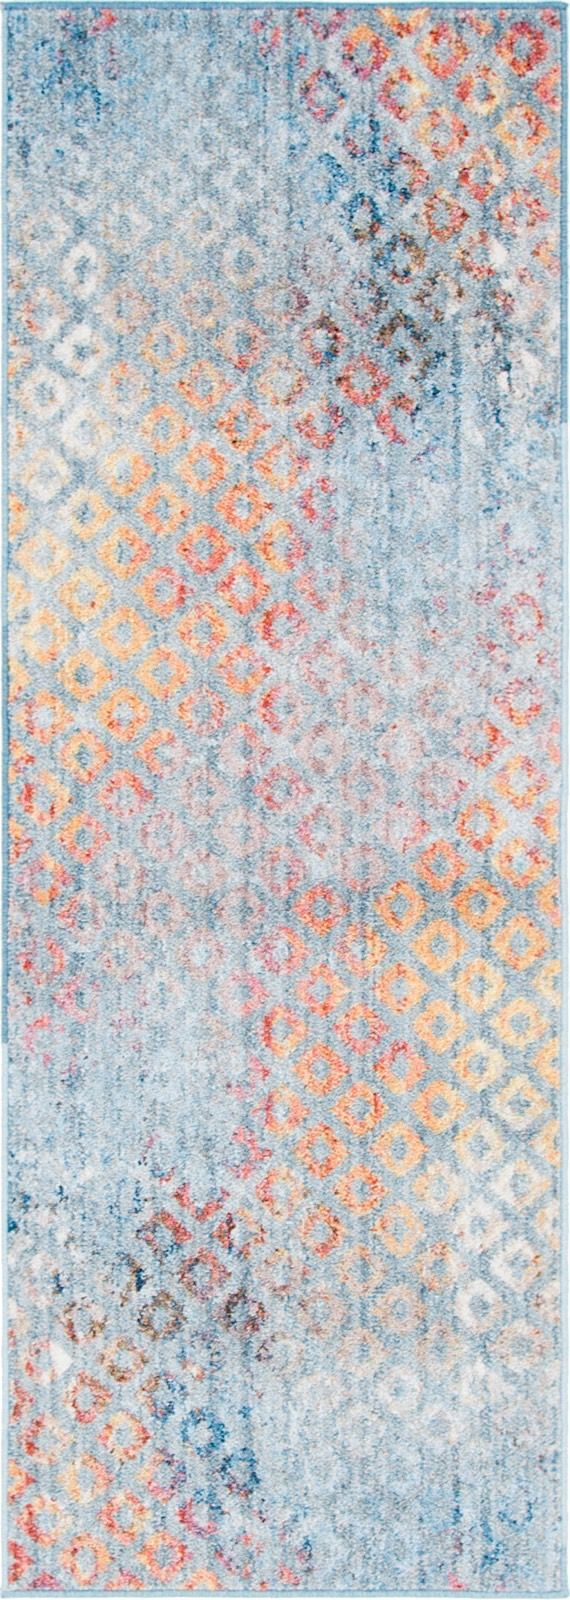 rugpal vivid contemporary area rug collection